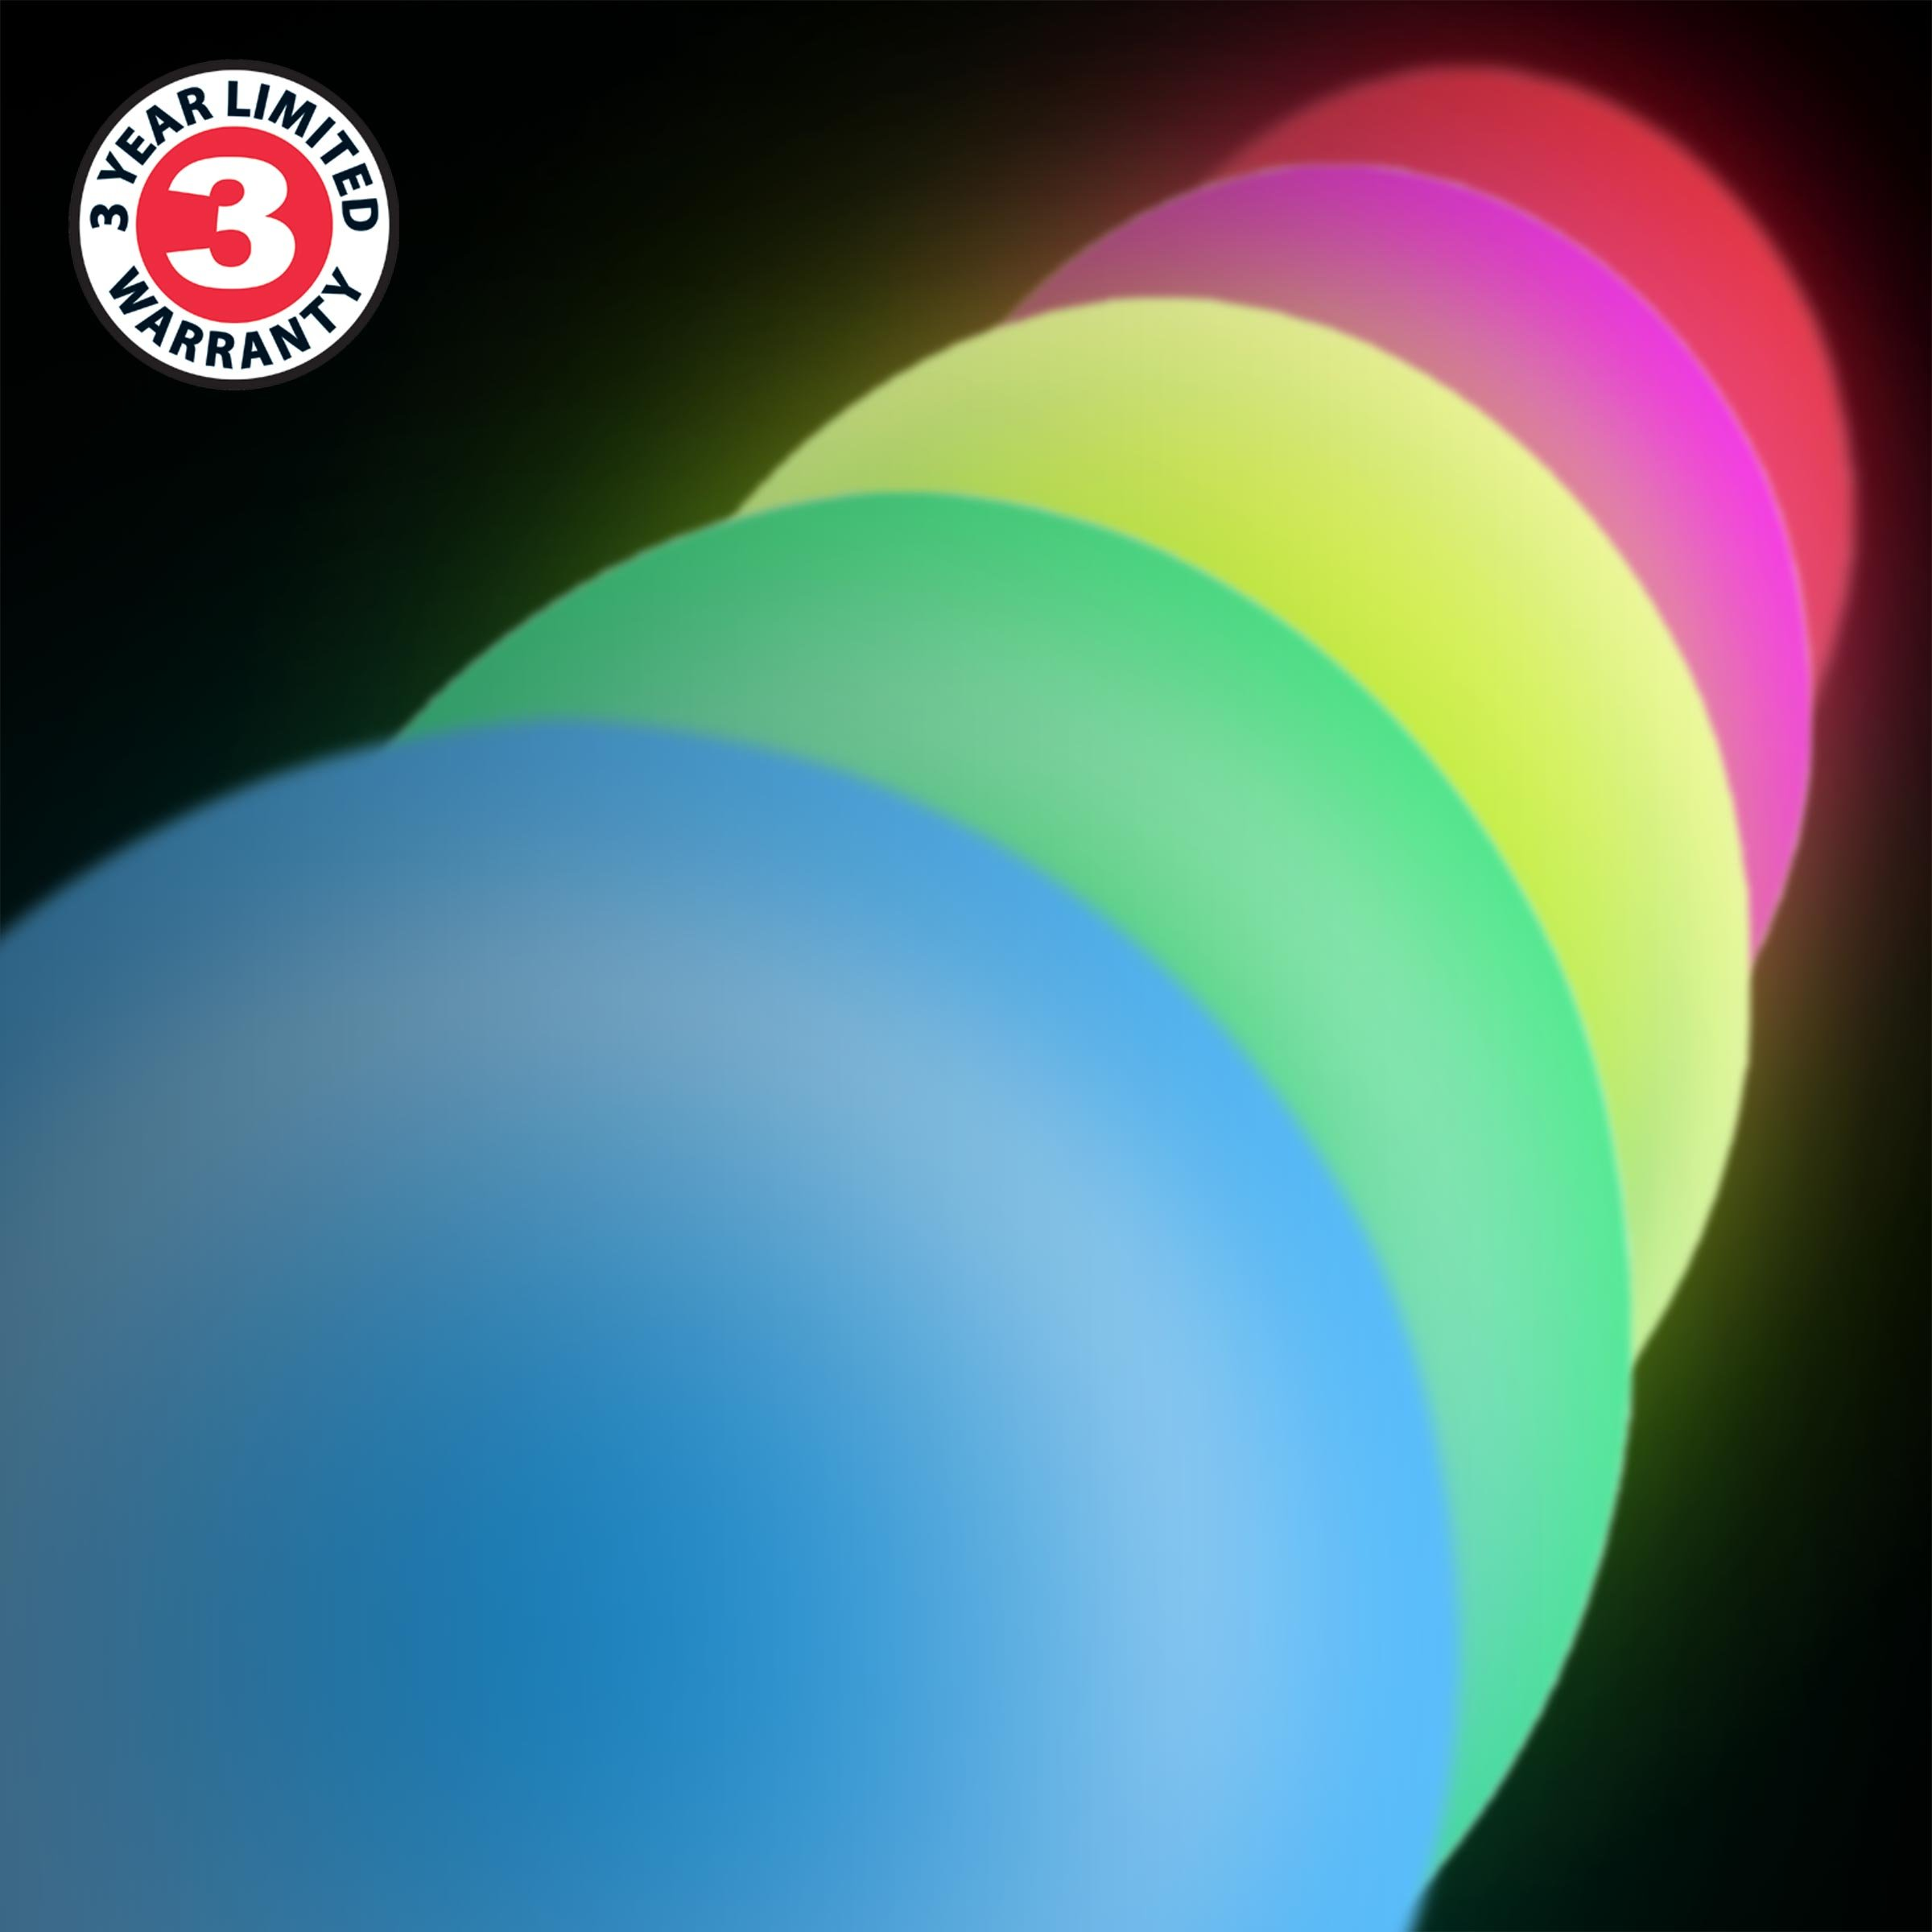 ENHANCE LED Globe Night Light Ambient Color Changing Premium Glass Mood Lamp with Remote Control - 7.9 inch 4 Lighting Modes & Battery or AC Adapter Power - Perfect for Children & Adults by ENHANCE (Image #6)